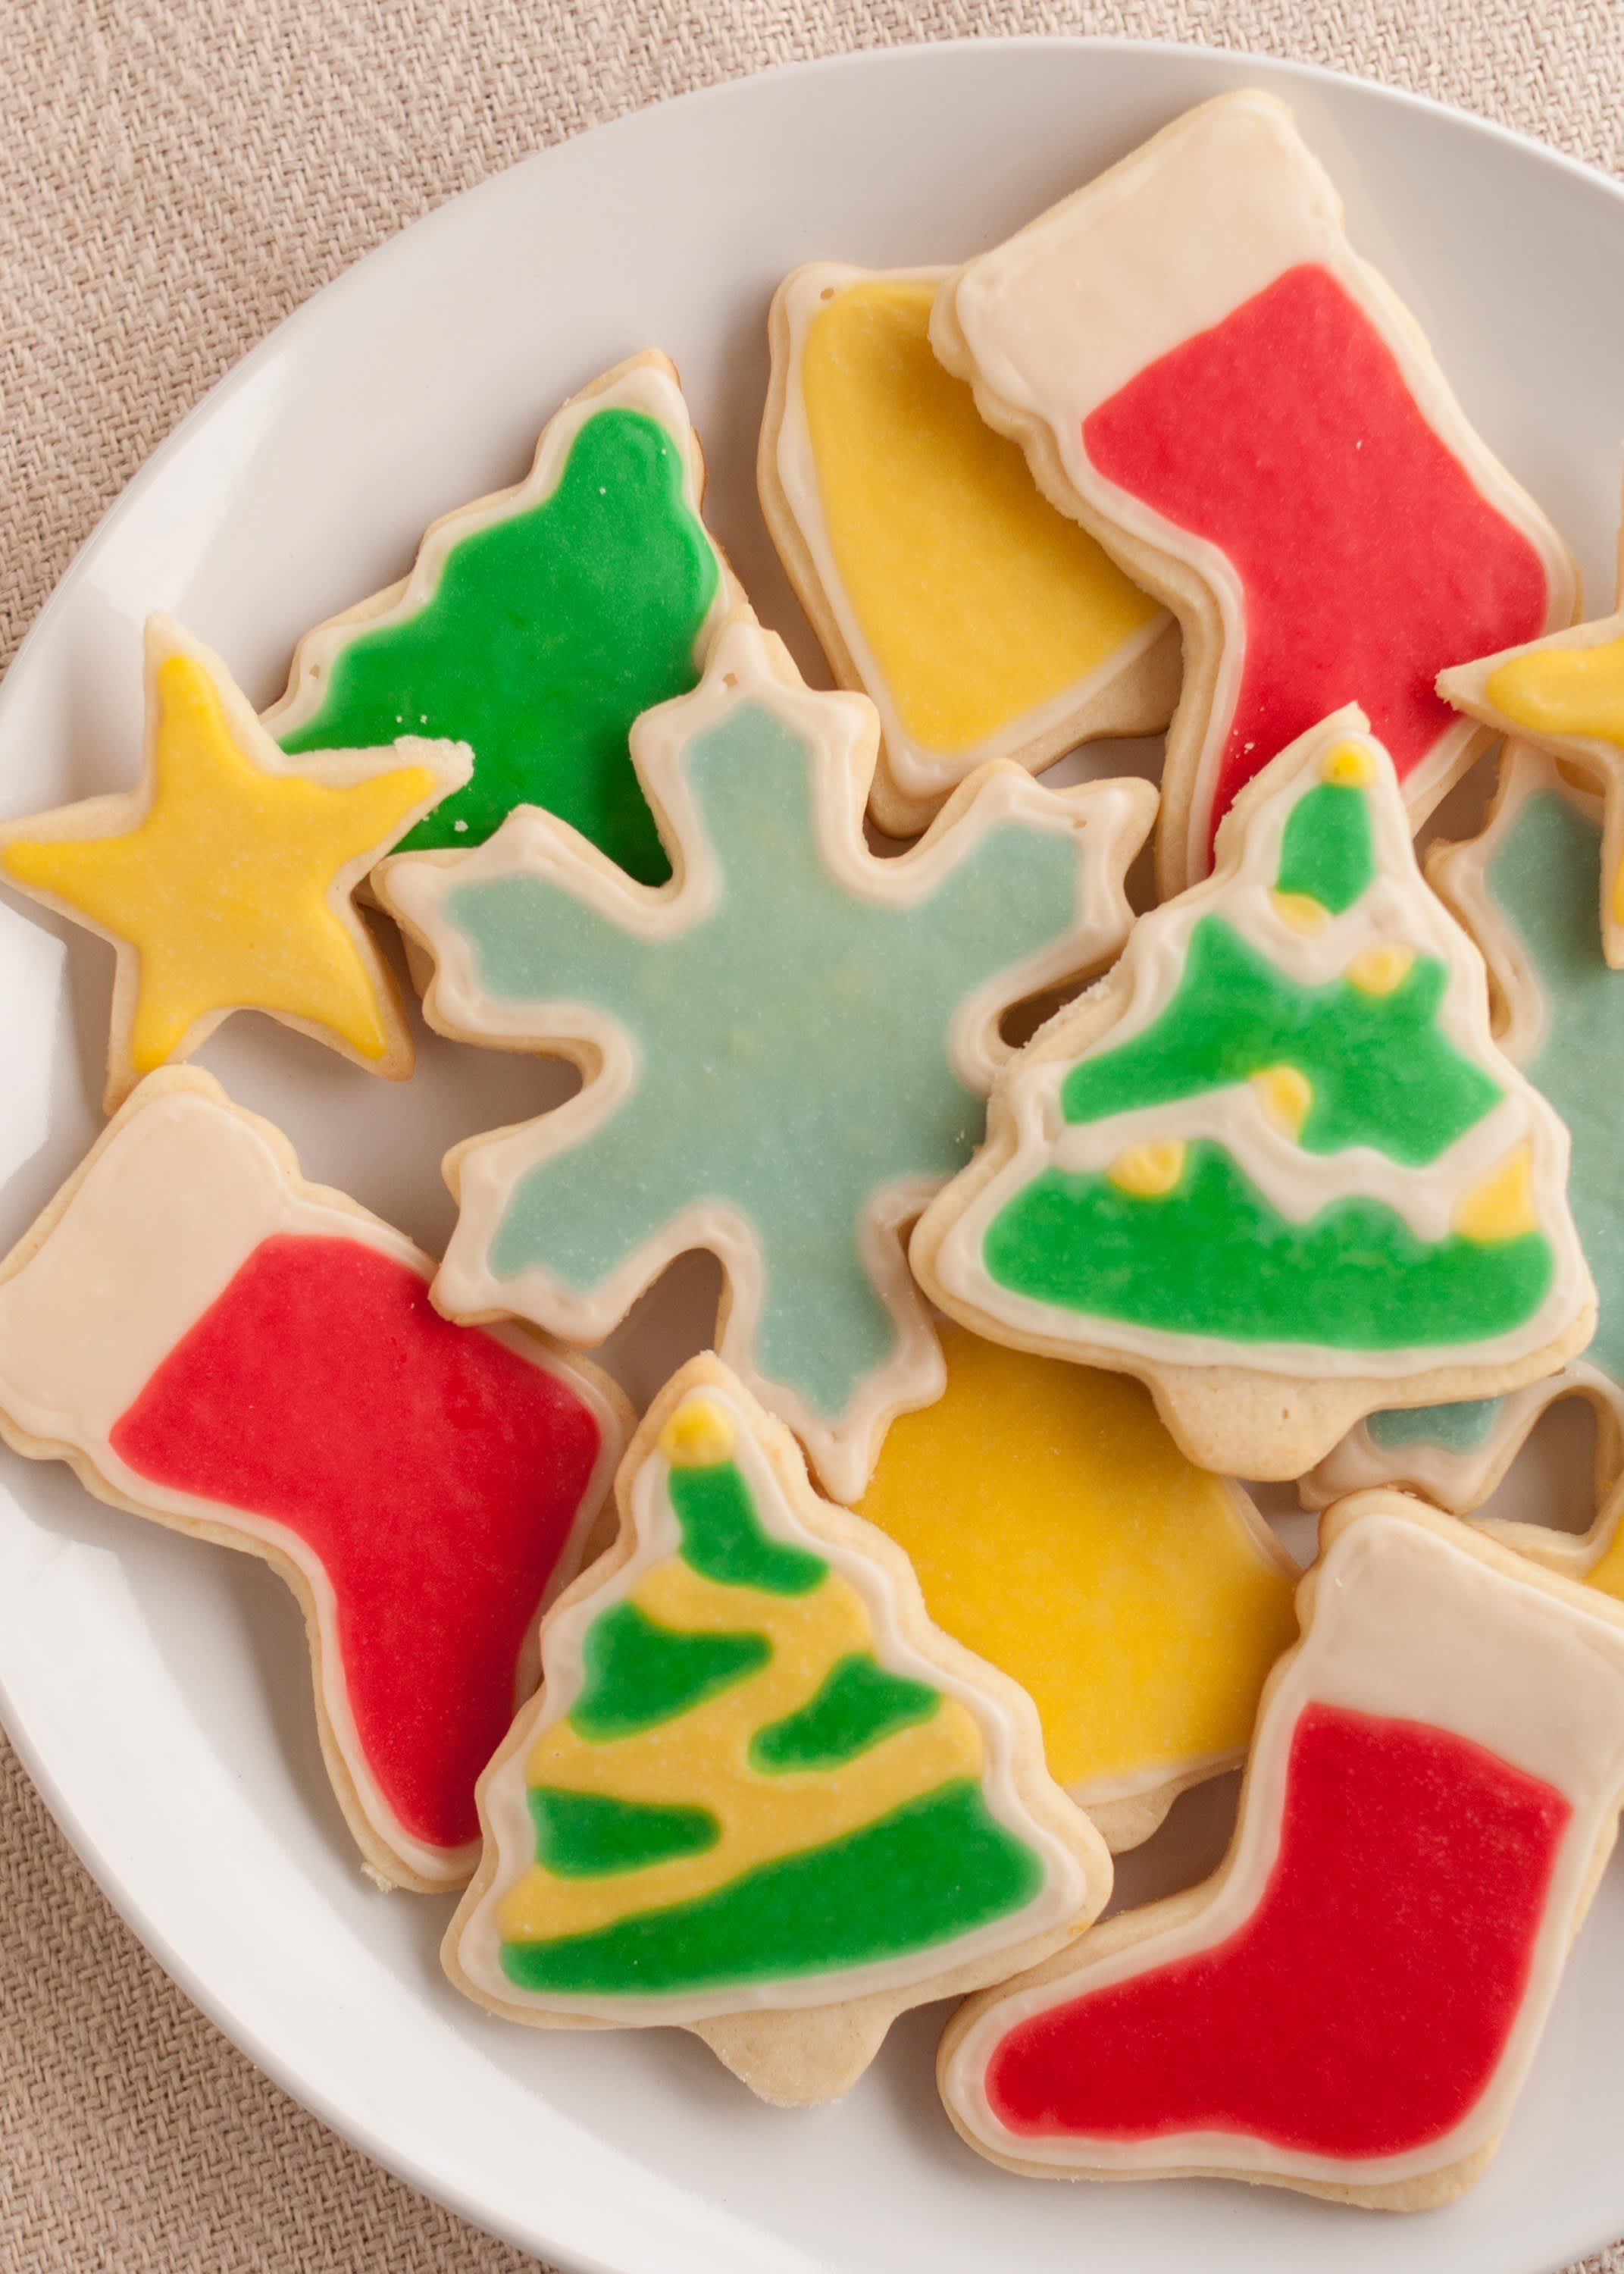 How To Make Cut Out Sugar Cookies